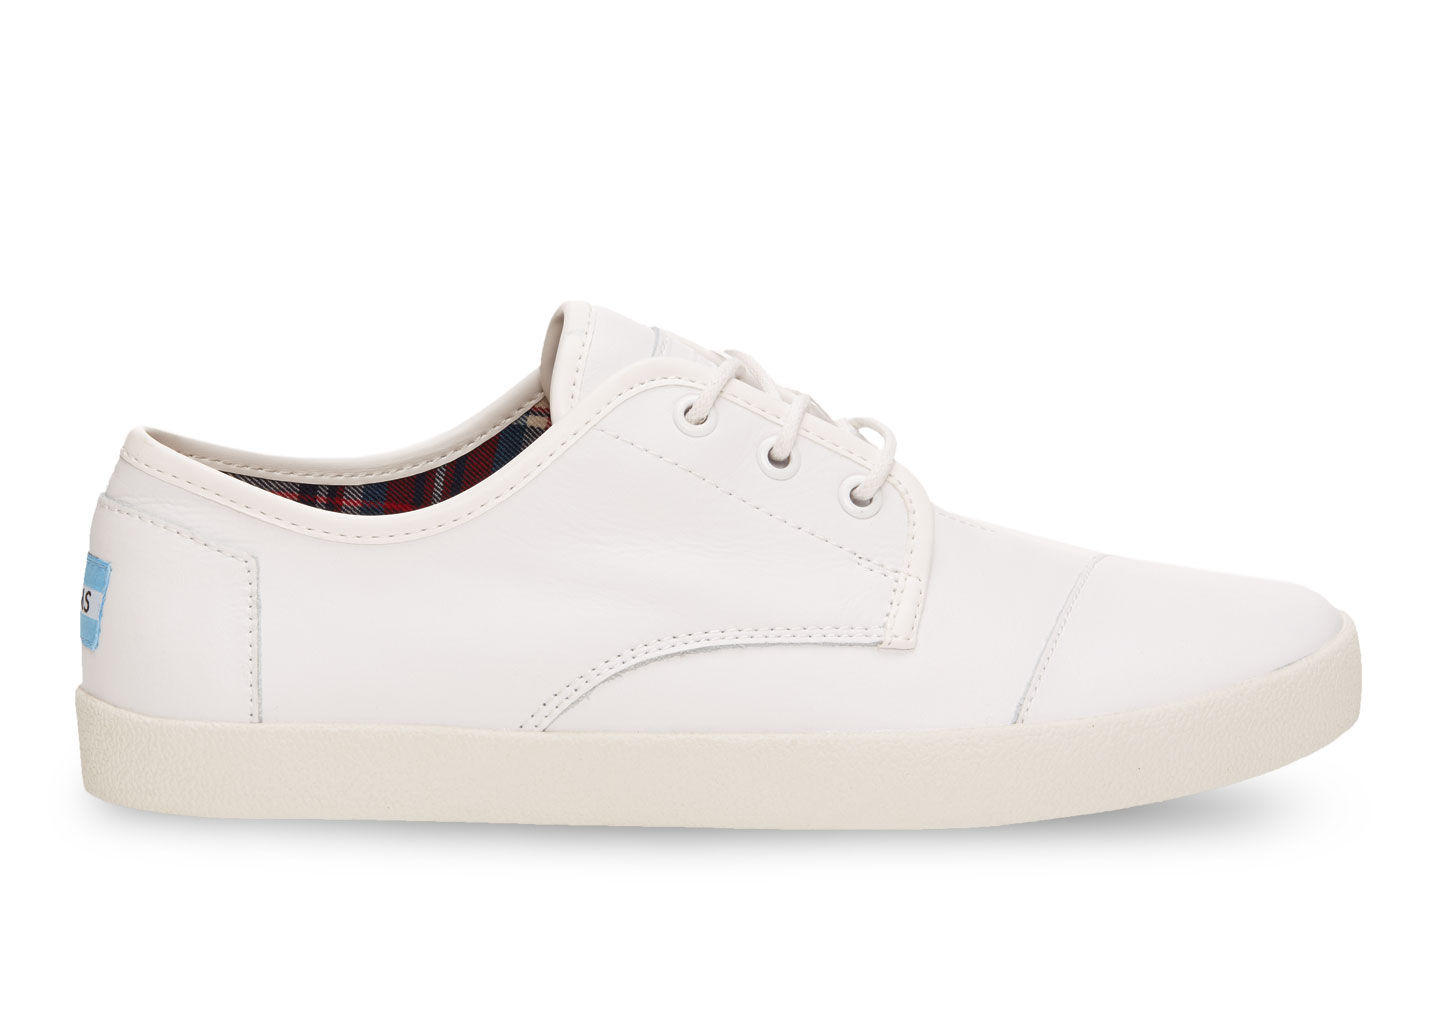 sale online official site online store White Leather Men's Paseos